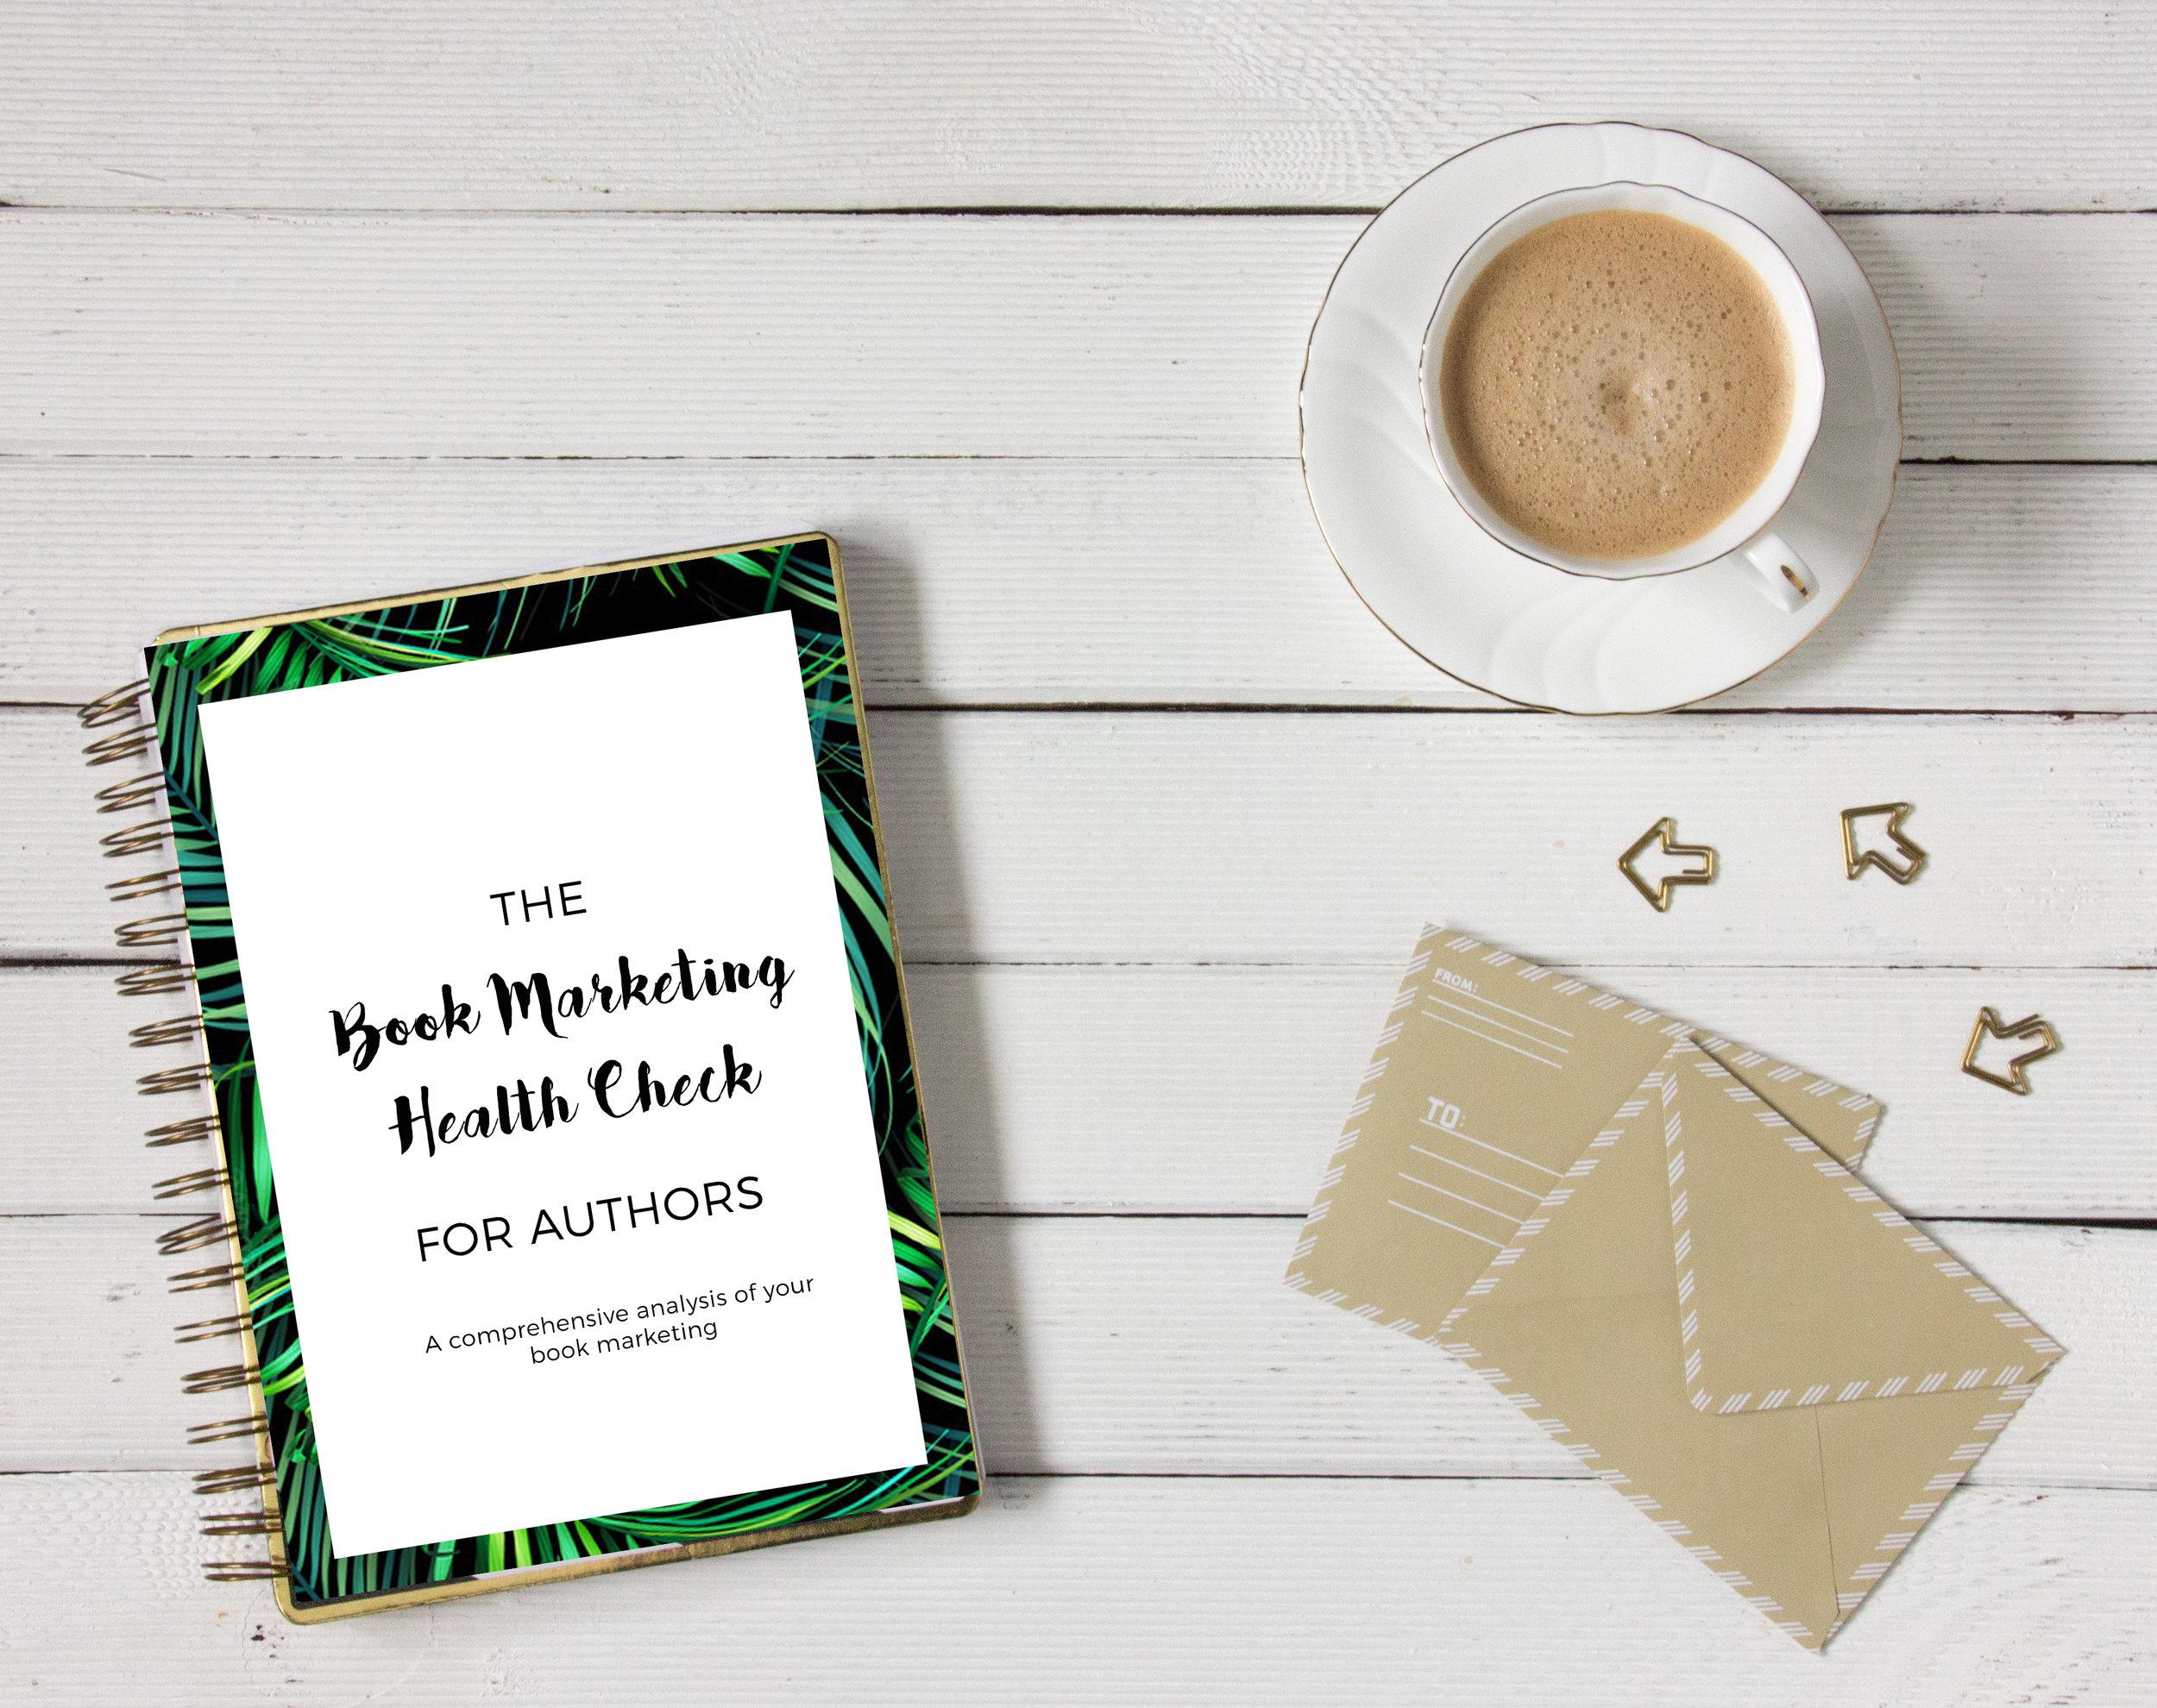 Download your FREEBook Marketing Health Check, Ultimate Author Website Checklist and more -